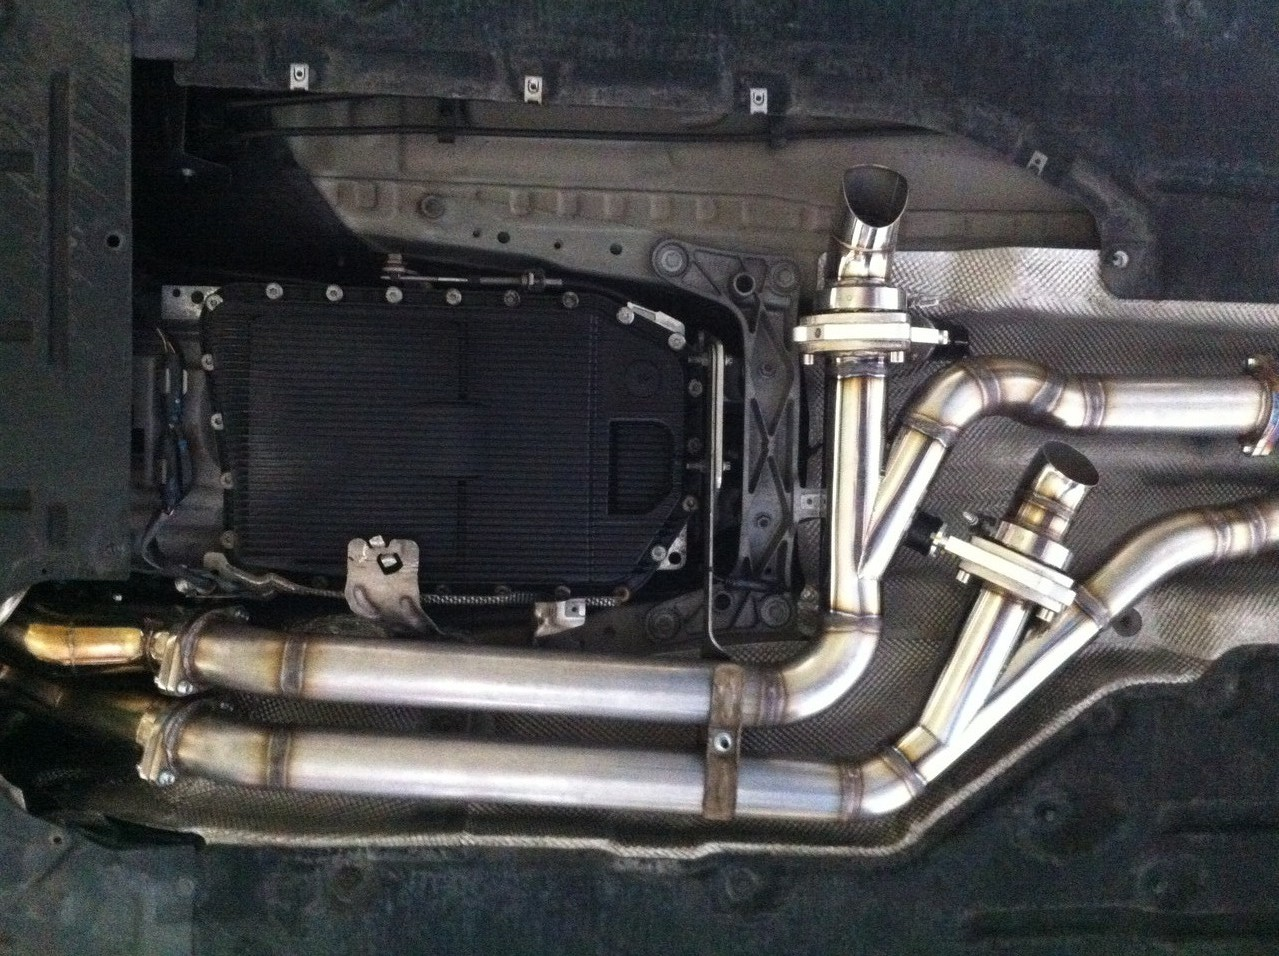 PRO EXHAUST SYSTEM